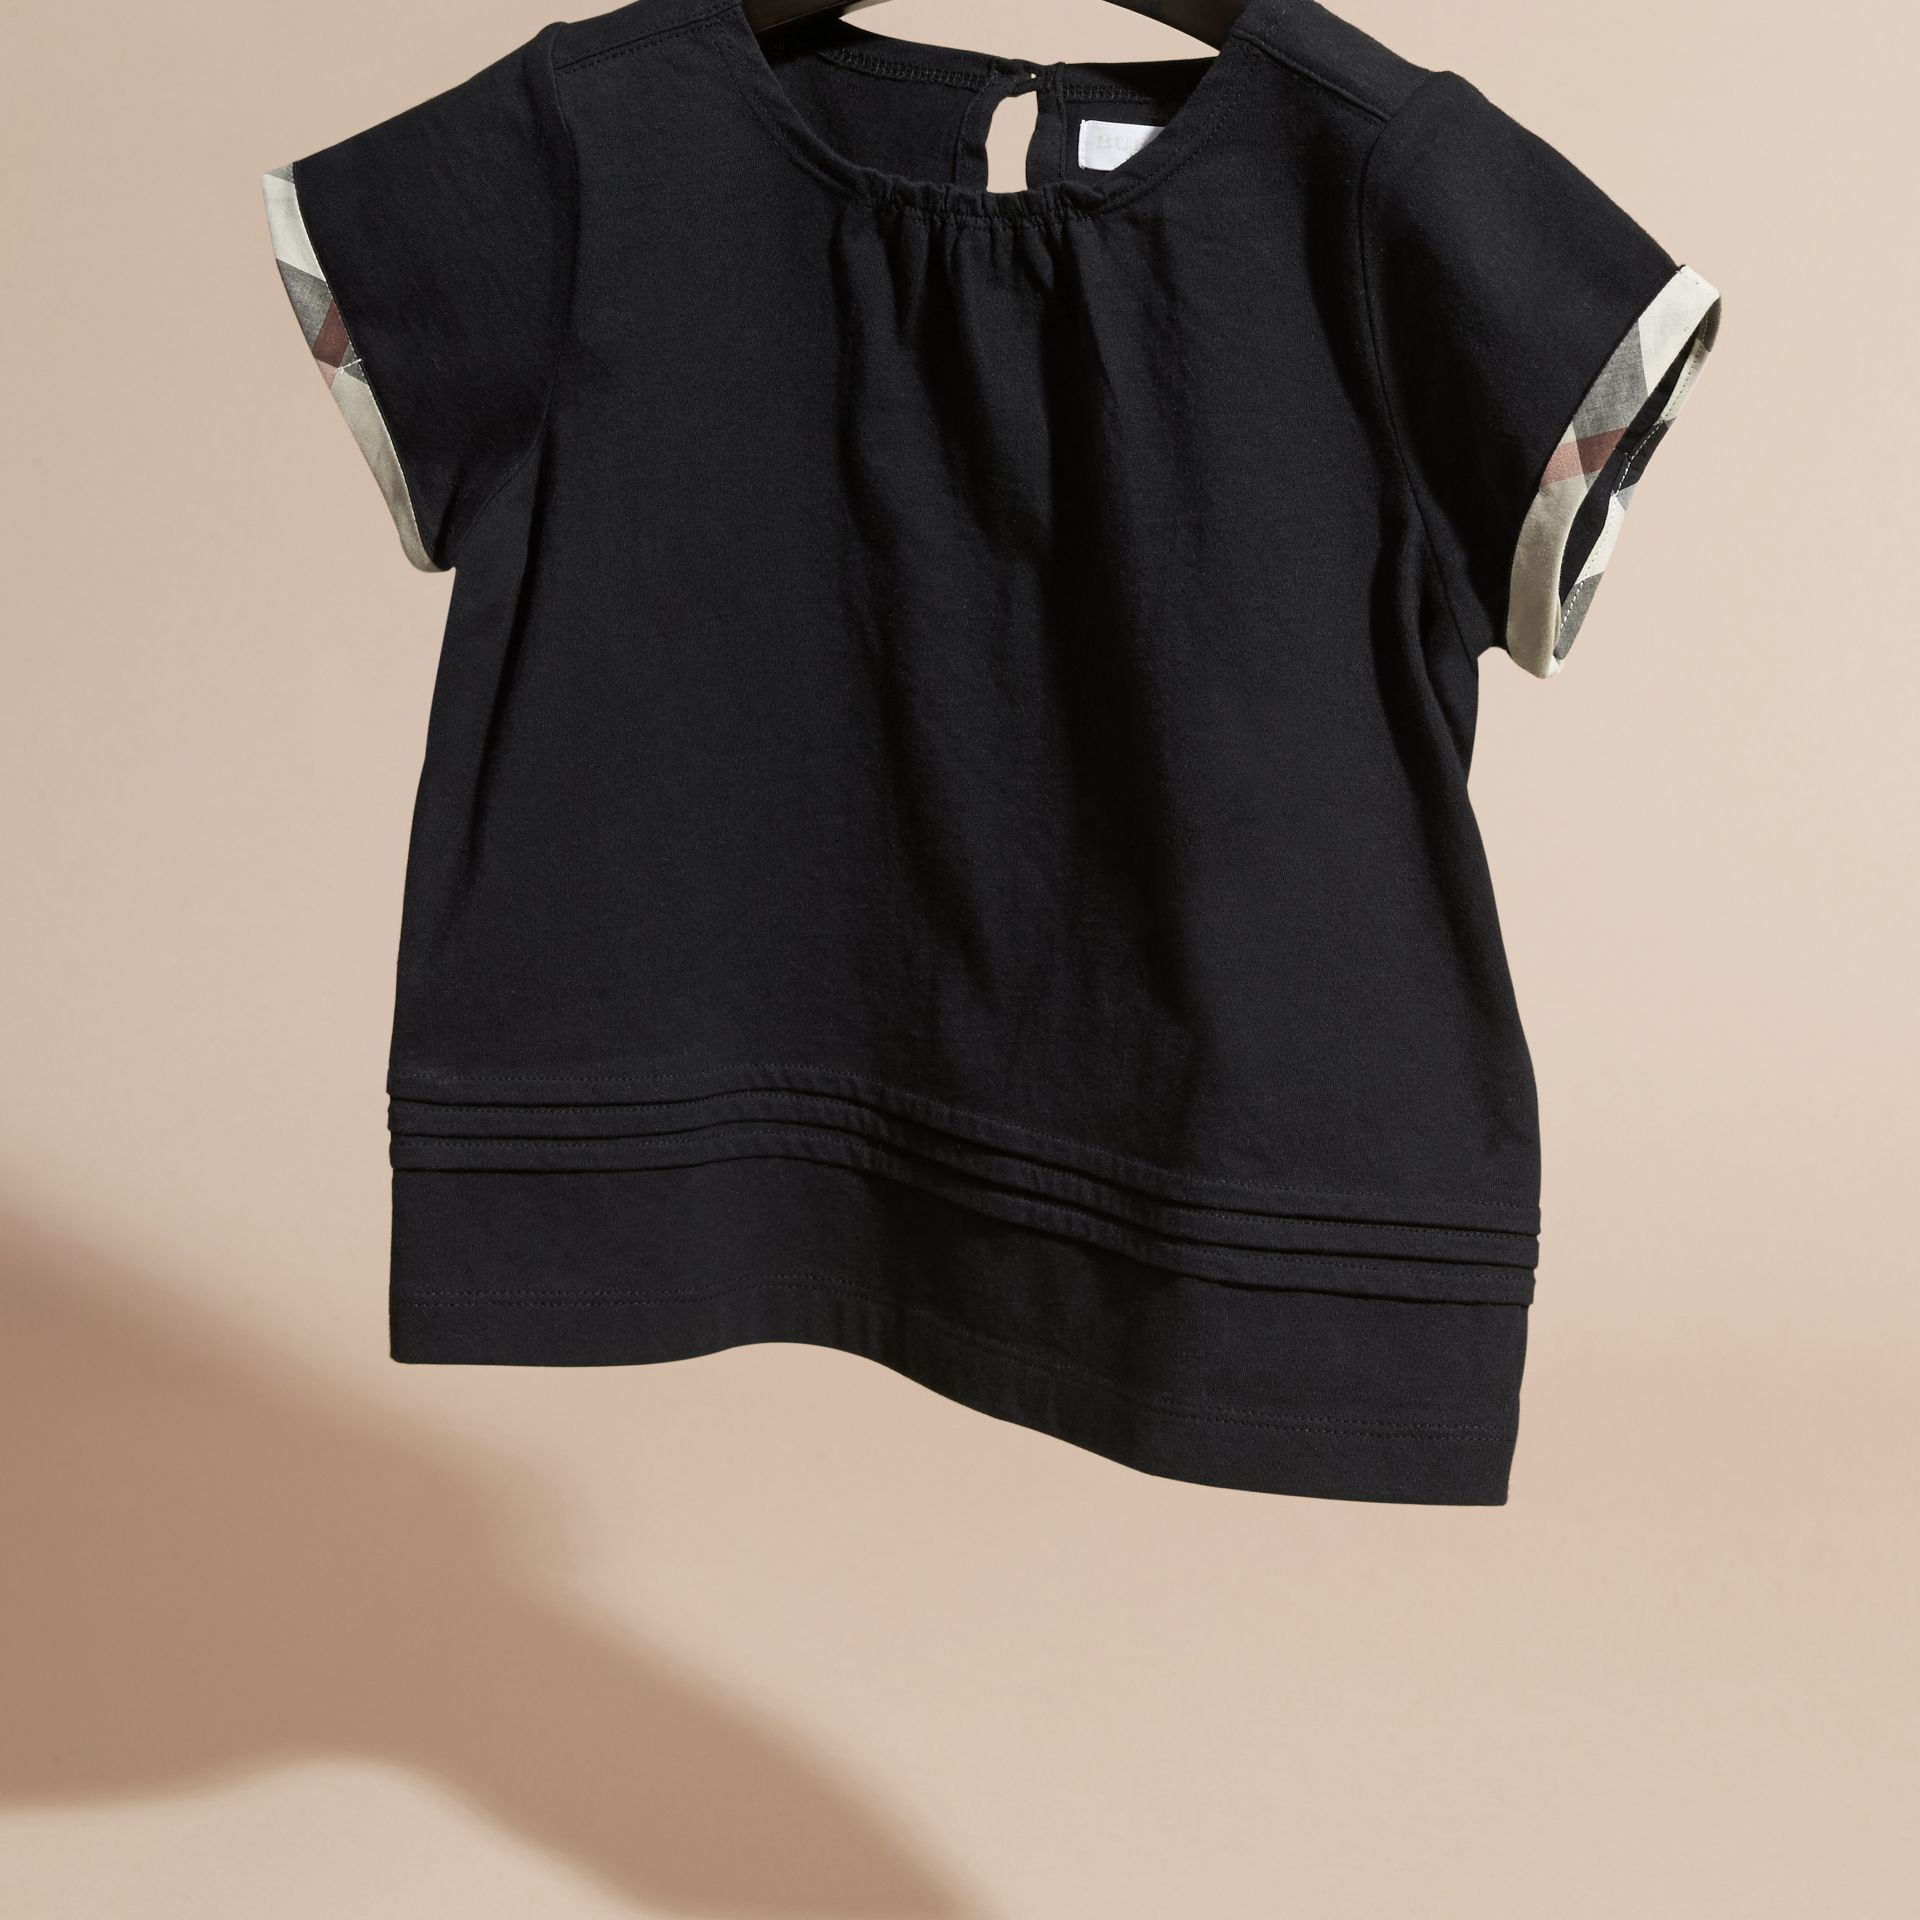 Black Pleat Detail Check Cotton T-Shirt Black - gallery image 3